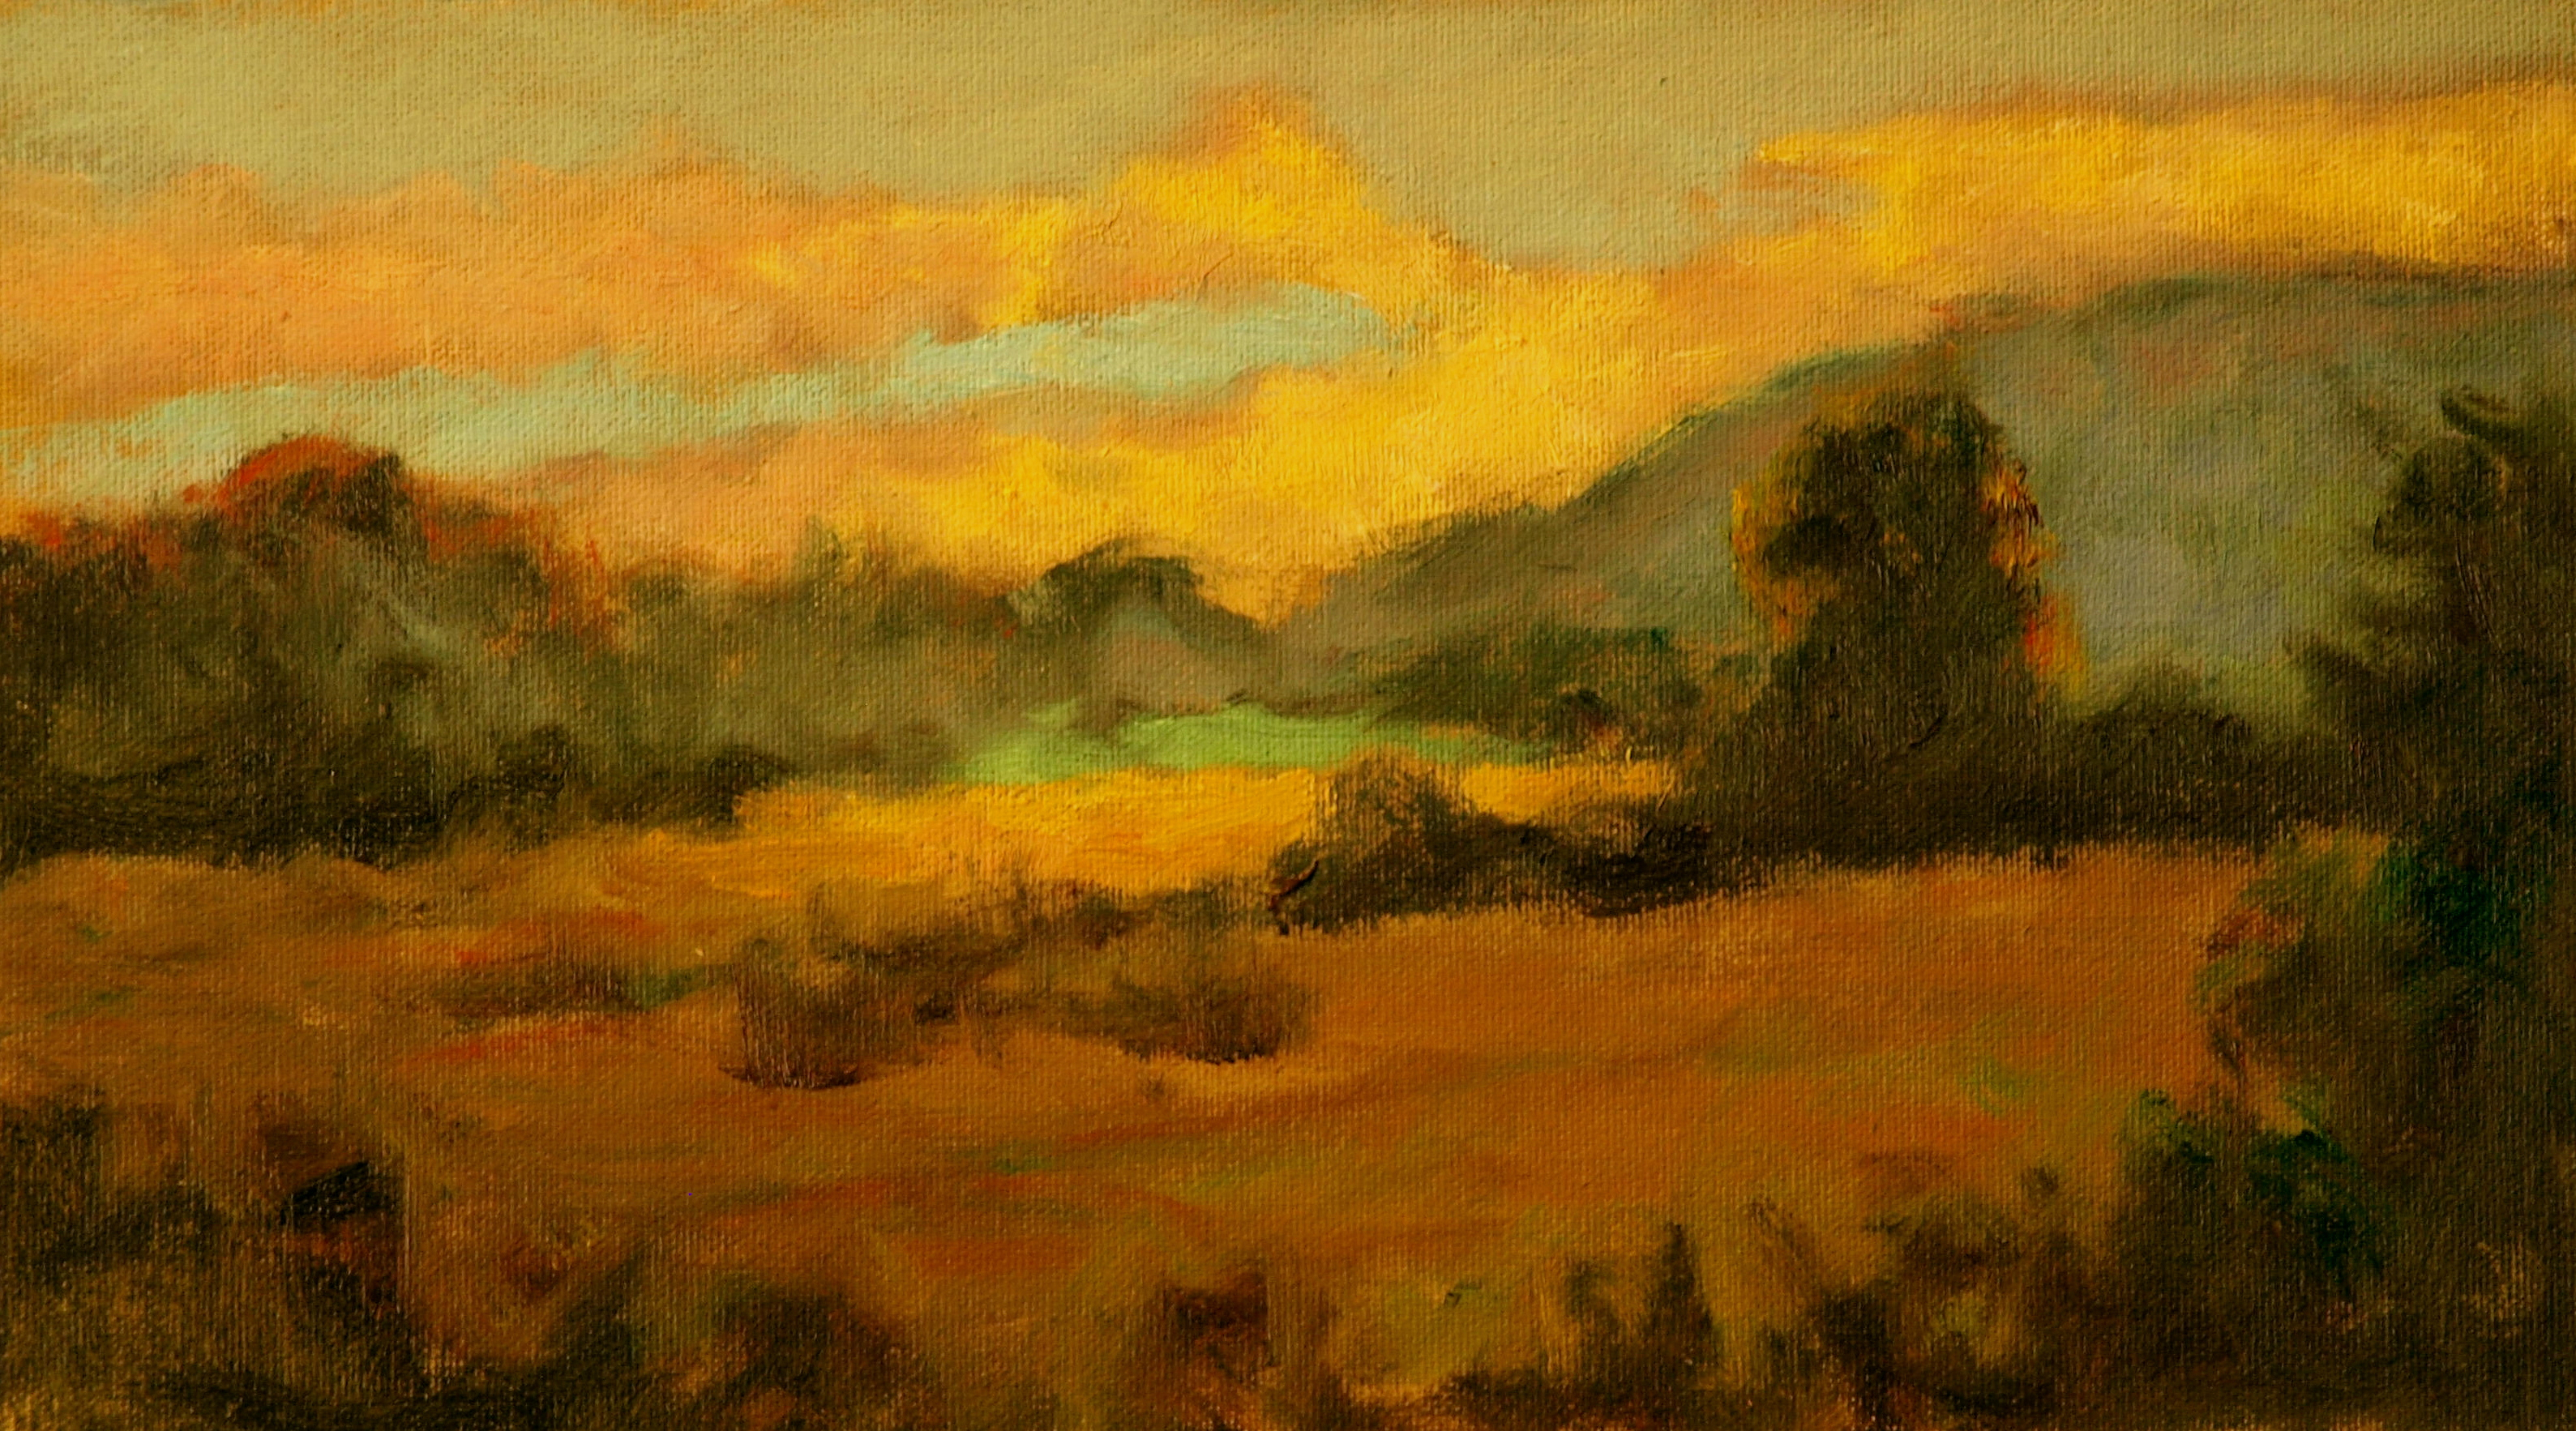 Sunset Across the Meadow, Oil on Canvas on Panel, 8 x 14 Inches, by Richard Stalter, $225